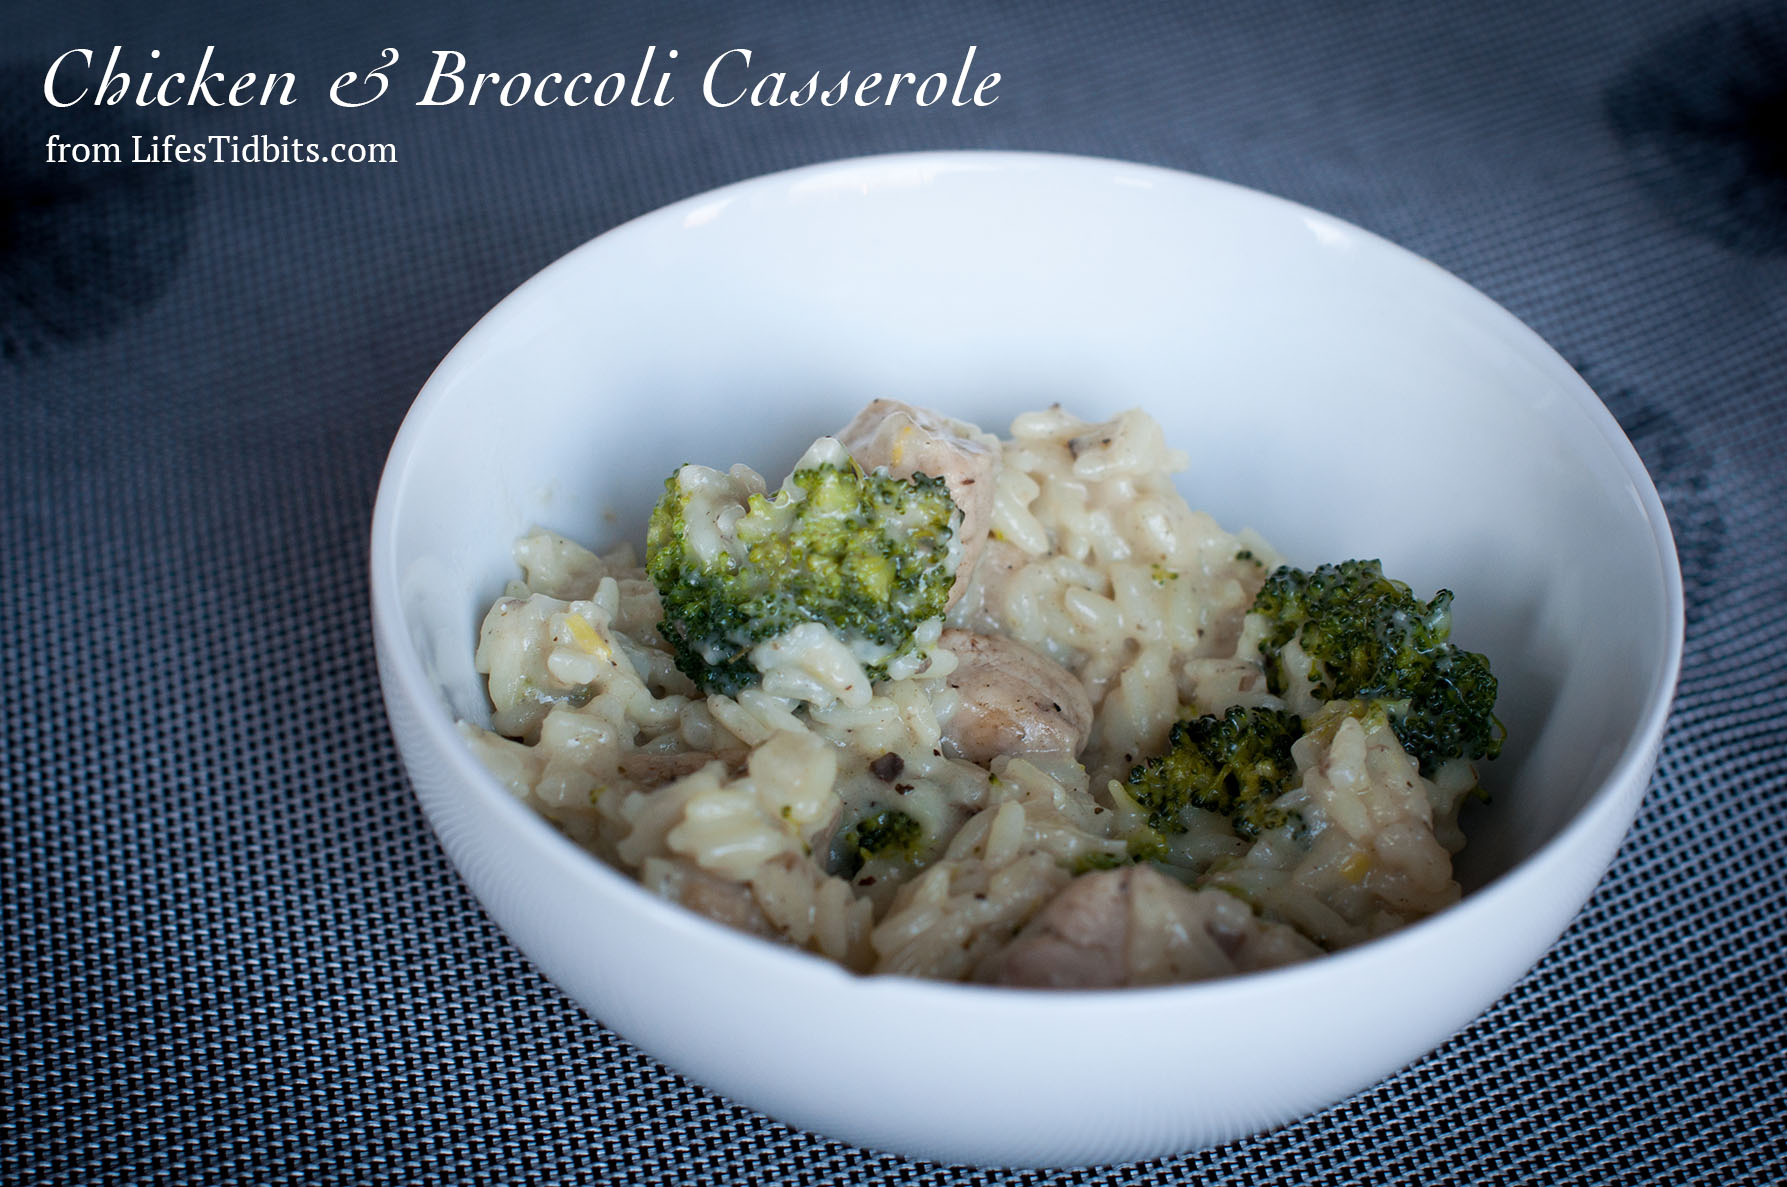 Chicken & Broccoli Casserole Recipe, Dinner ideas for toddlers | Life's Tidbits